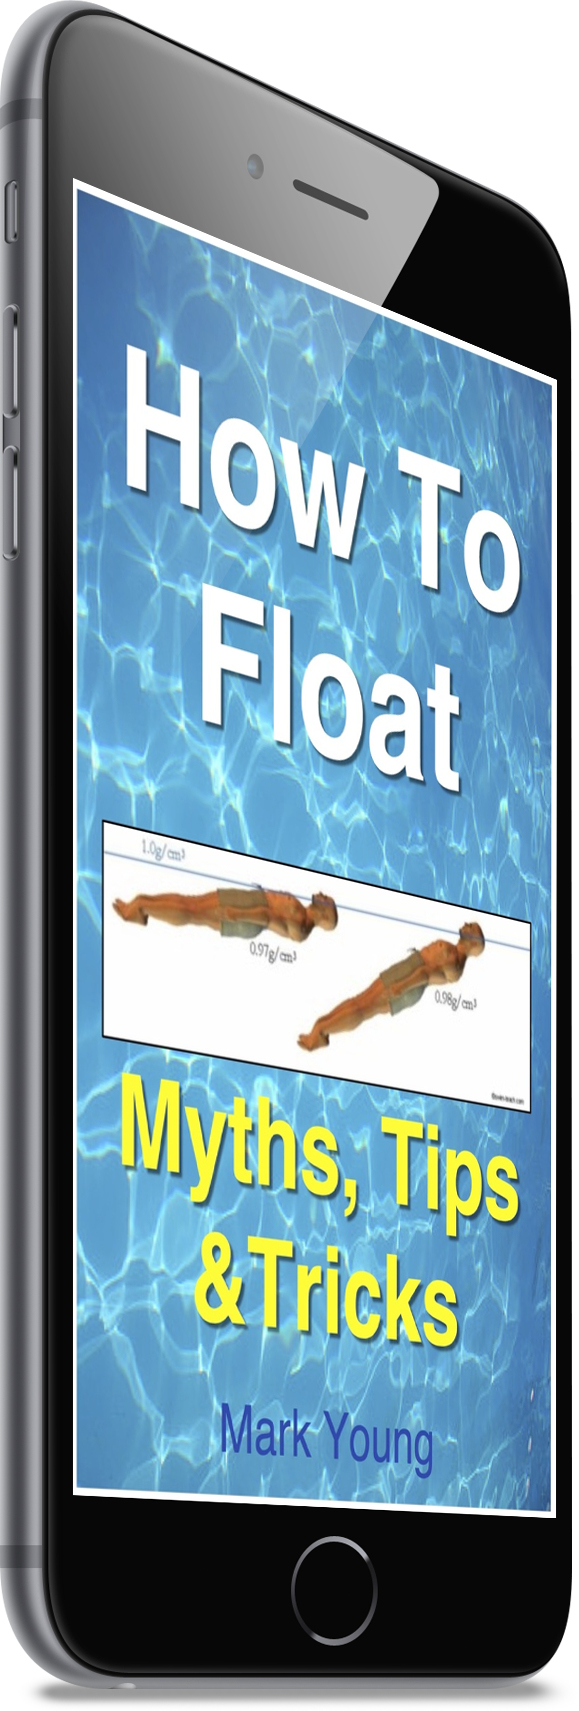 how to float - tips, trick and myths